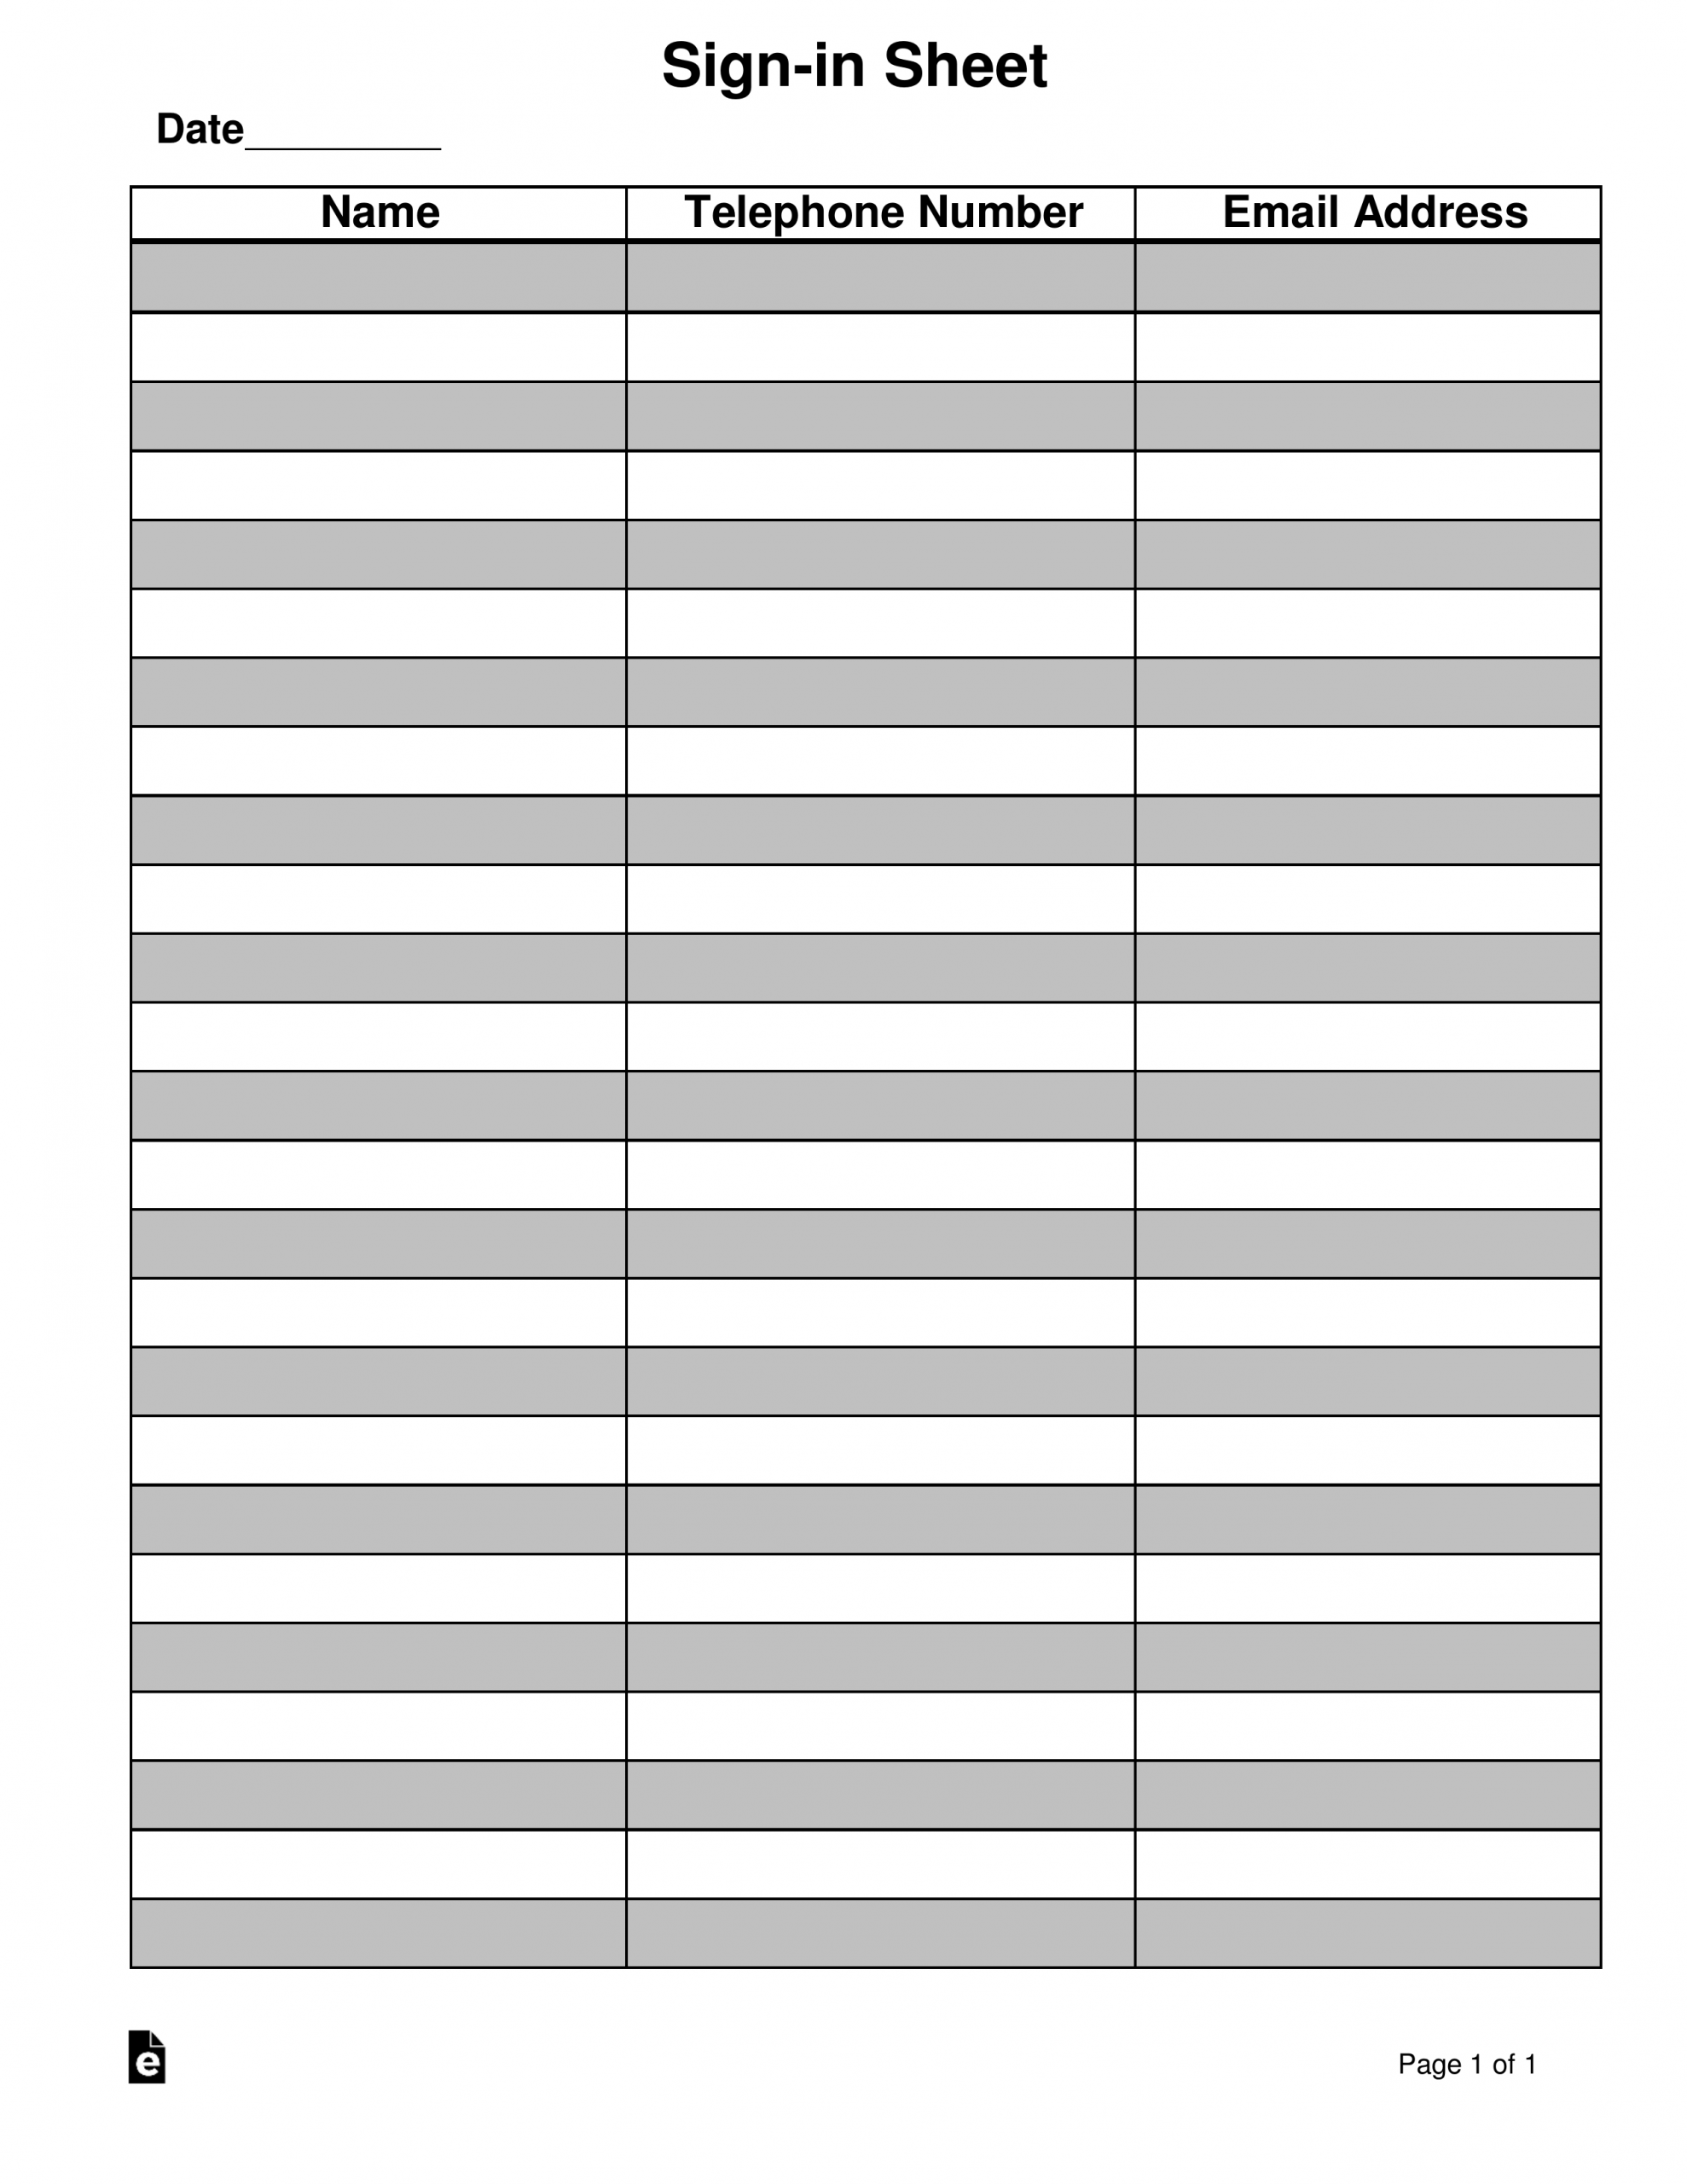 Attendance/Guest Sign In Sheet Template   Eforms – Free On Callalendar Sign Up Template